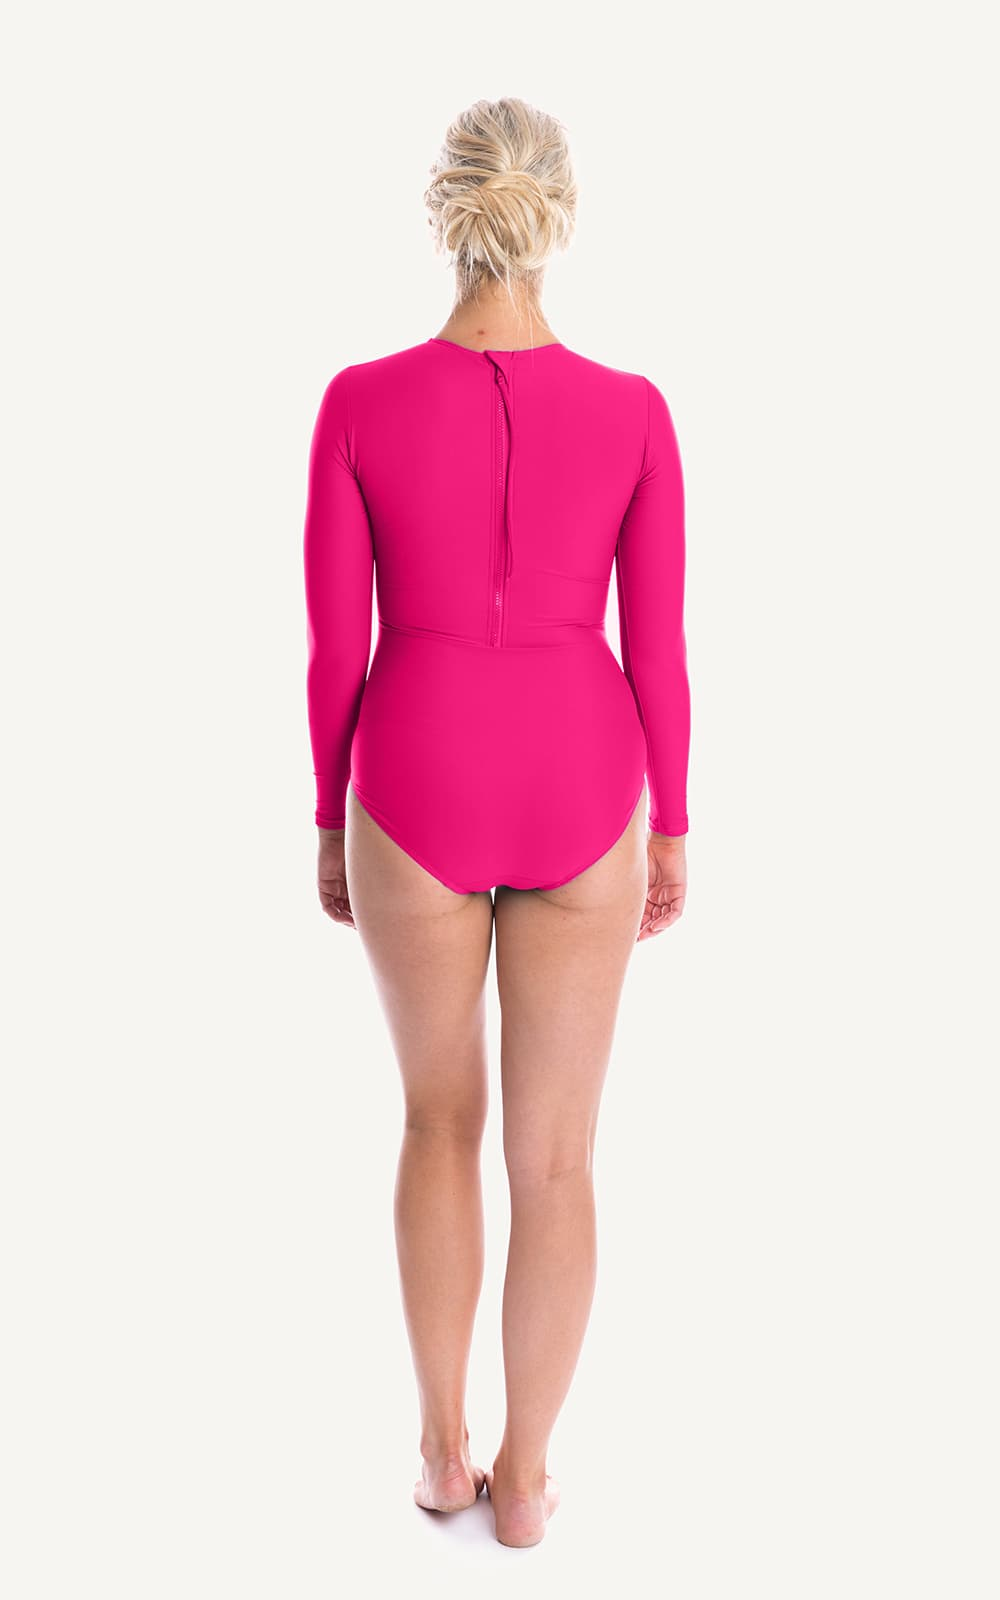 Long Sleeve One piece Pink Ruch Sun Protection Bra Bust Support Cup Sizes Tummy Moulded Zip Swim Swimsuit Swimwear Swimming Beachwear Women Plus Size